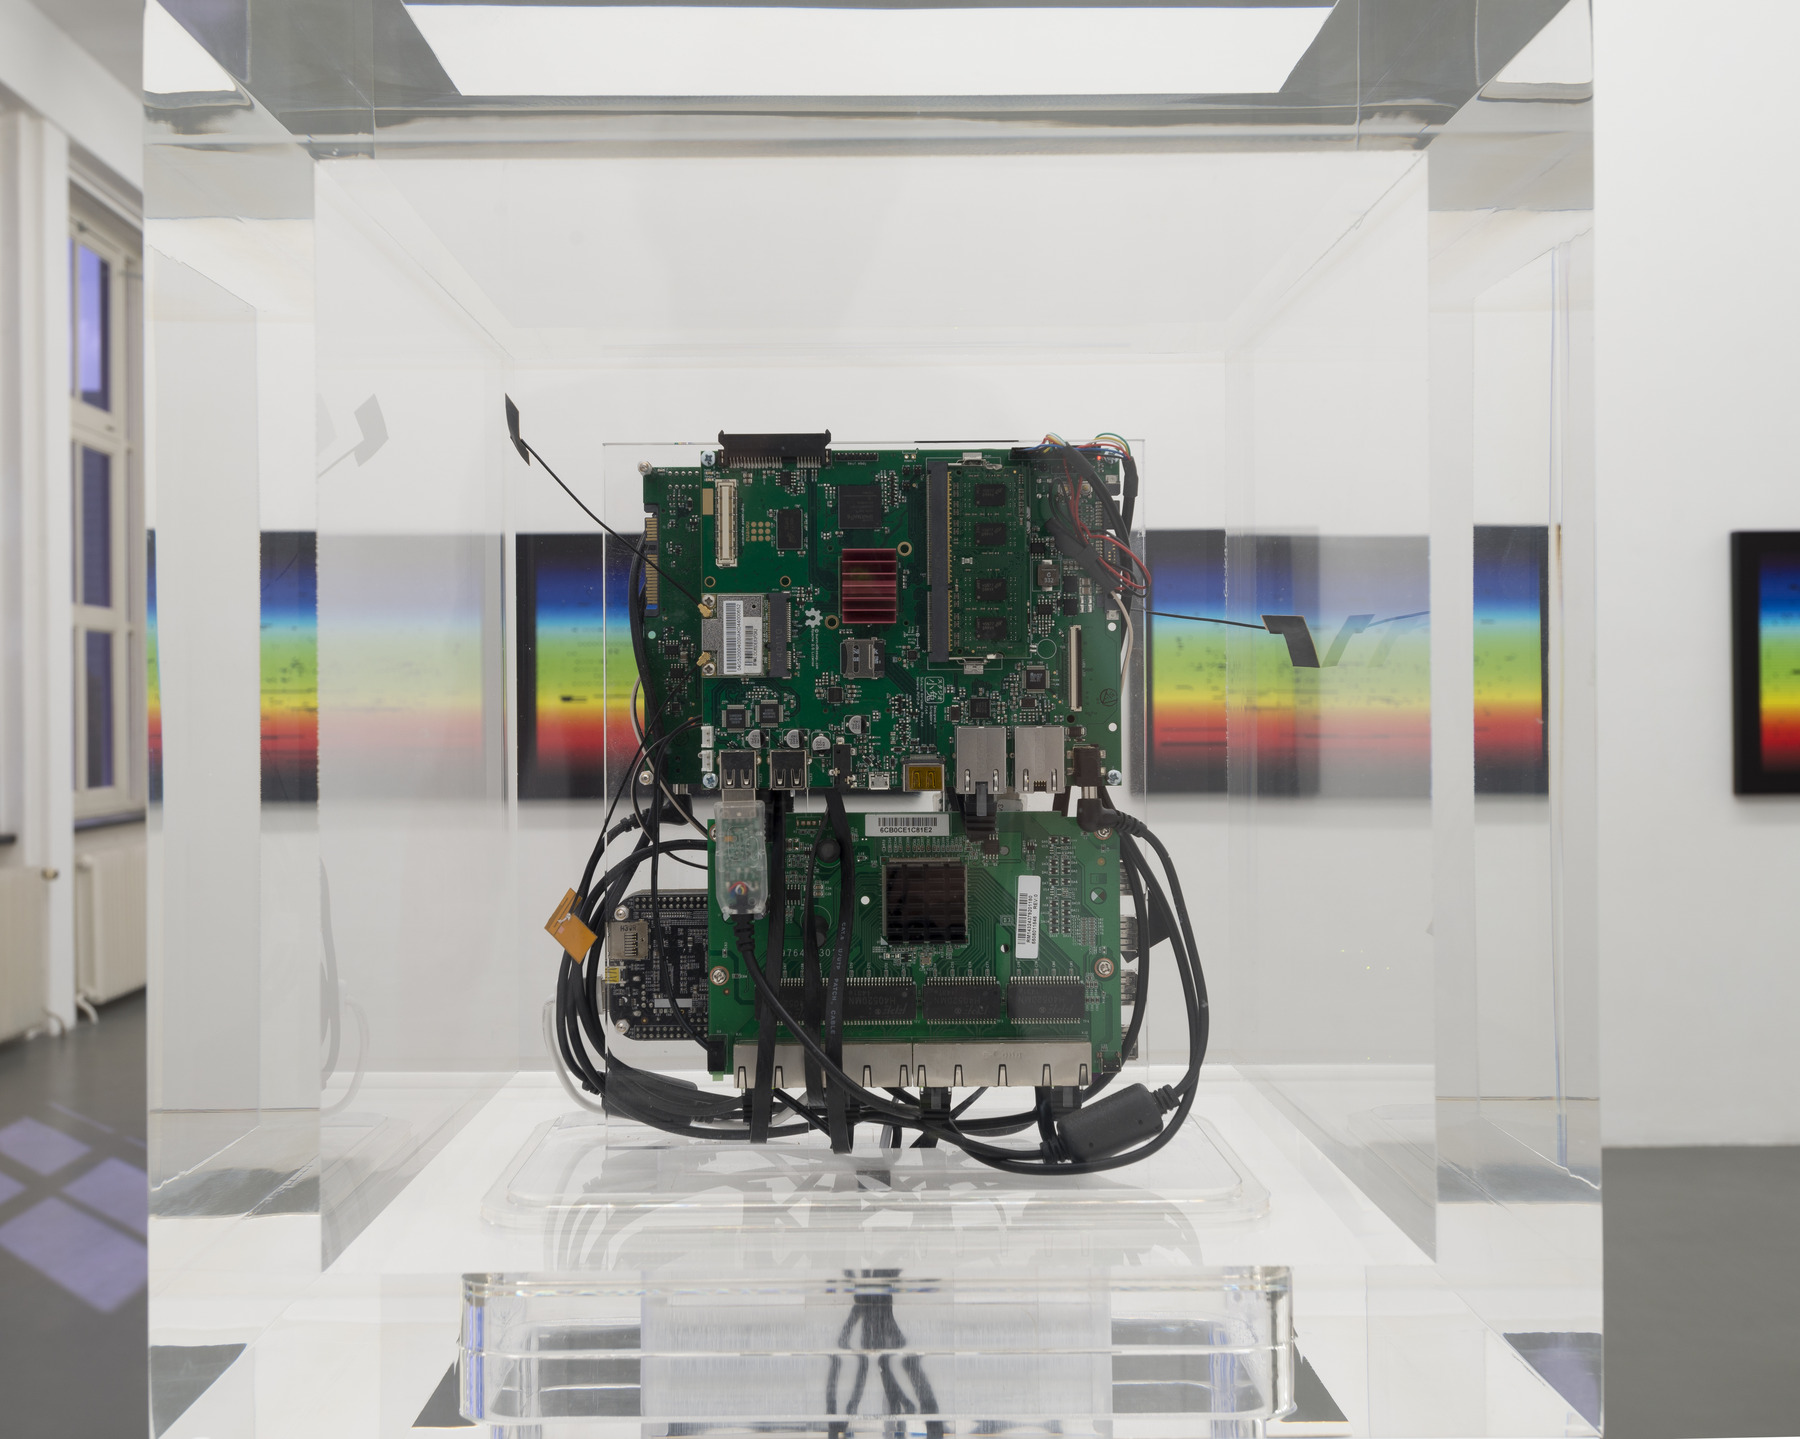 23_Trevor Paglen and Jacob Appelbaum_Autonomy Cube